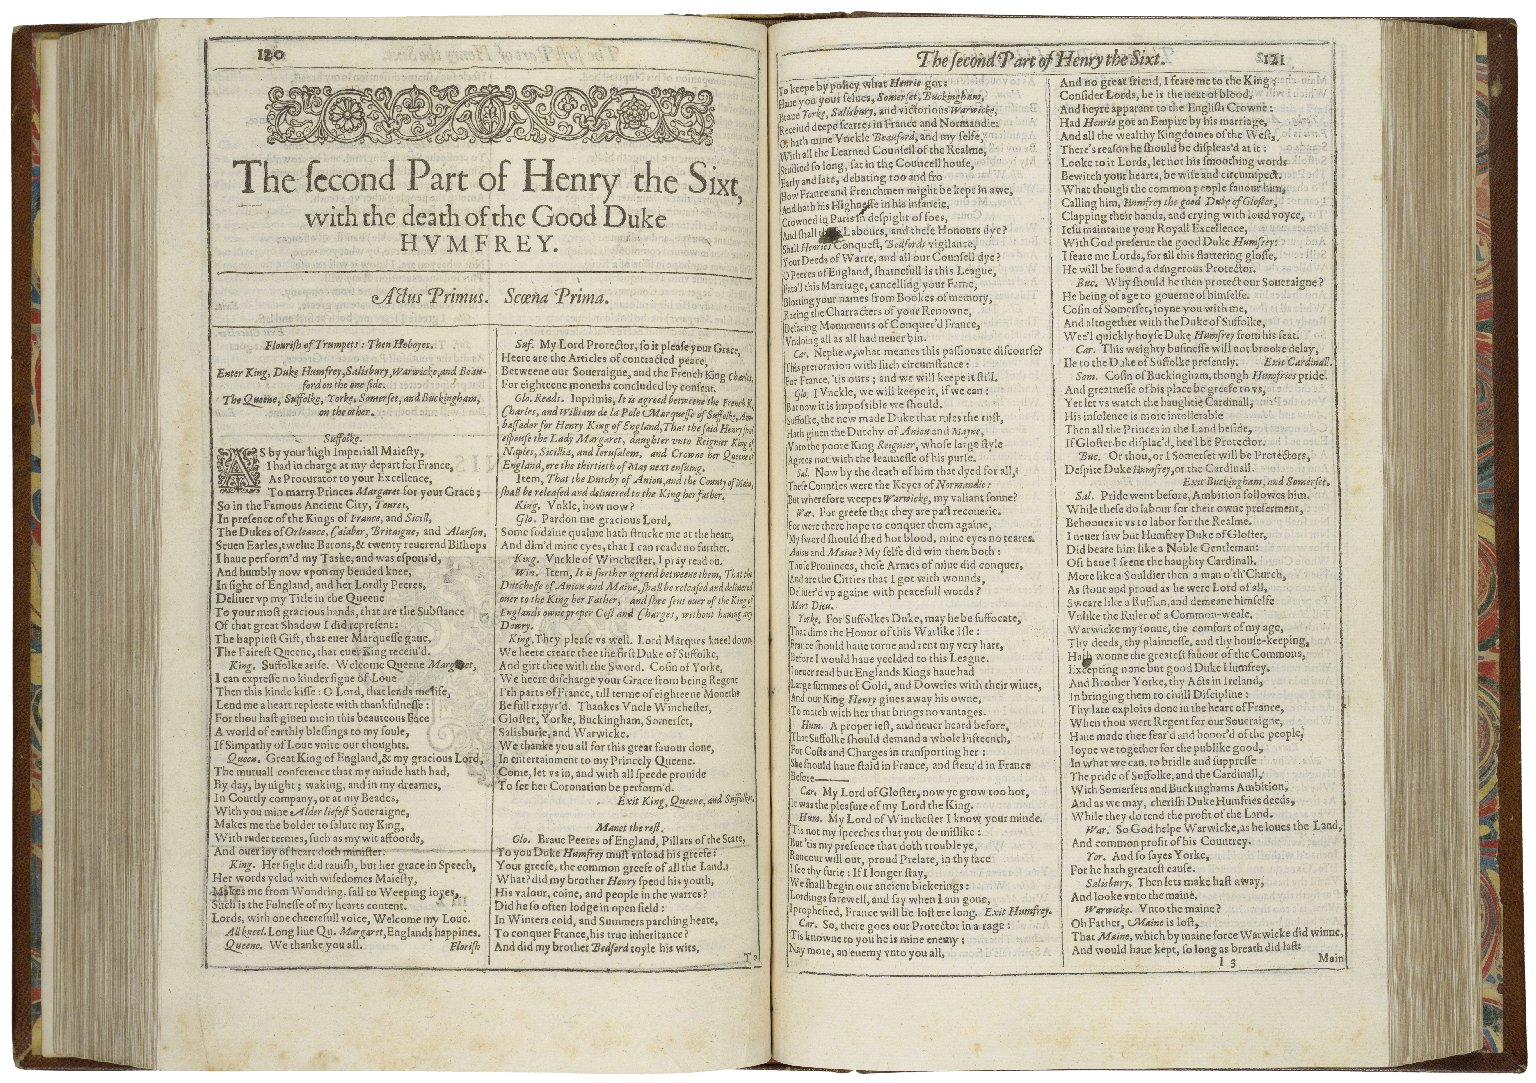 Henry VI, Part 1 (The First Part of King Henry the Sixth)